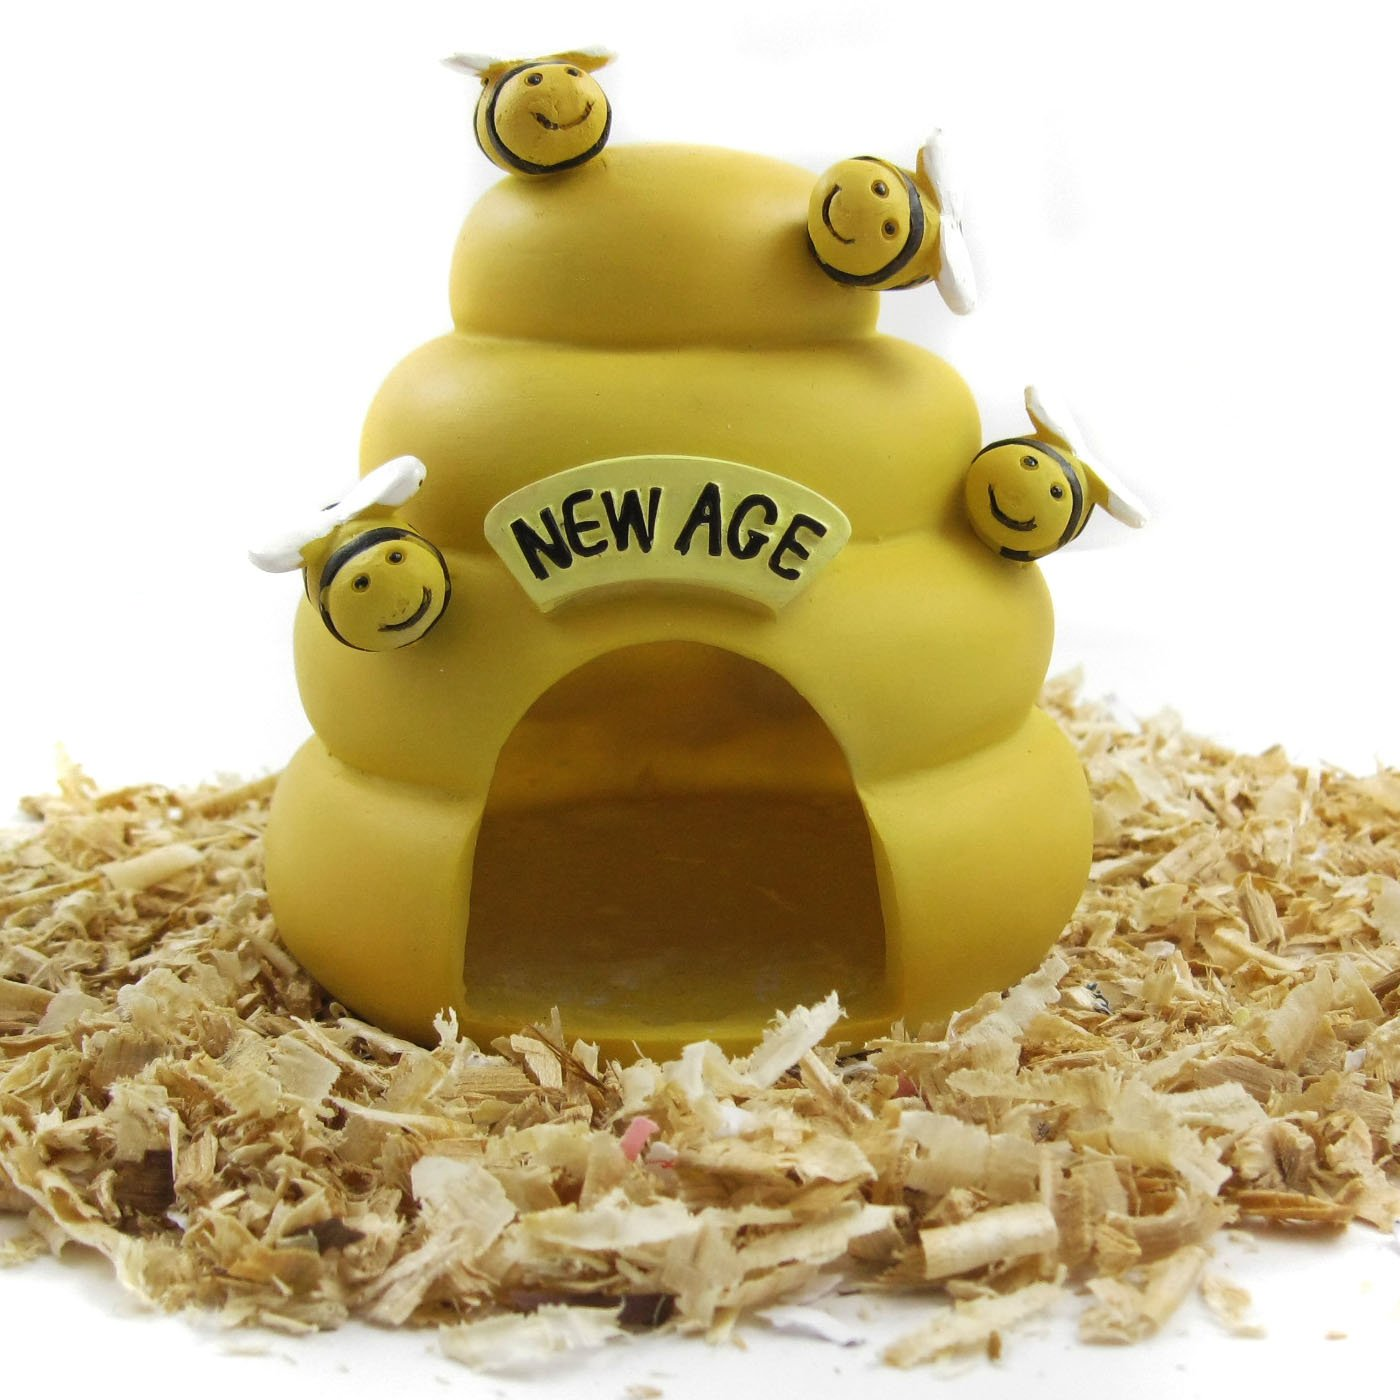 Amazon.com : Alfie Pet by Petoga Couture - Bumble Bee Hideout Hut for Small Animals like Dwarf Hamster and Mouse : Pet Habitats : Pet Supplies